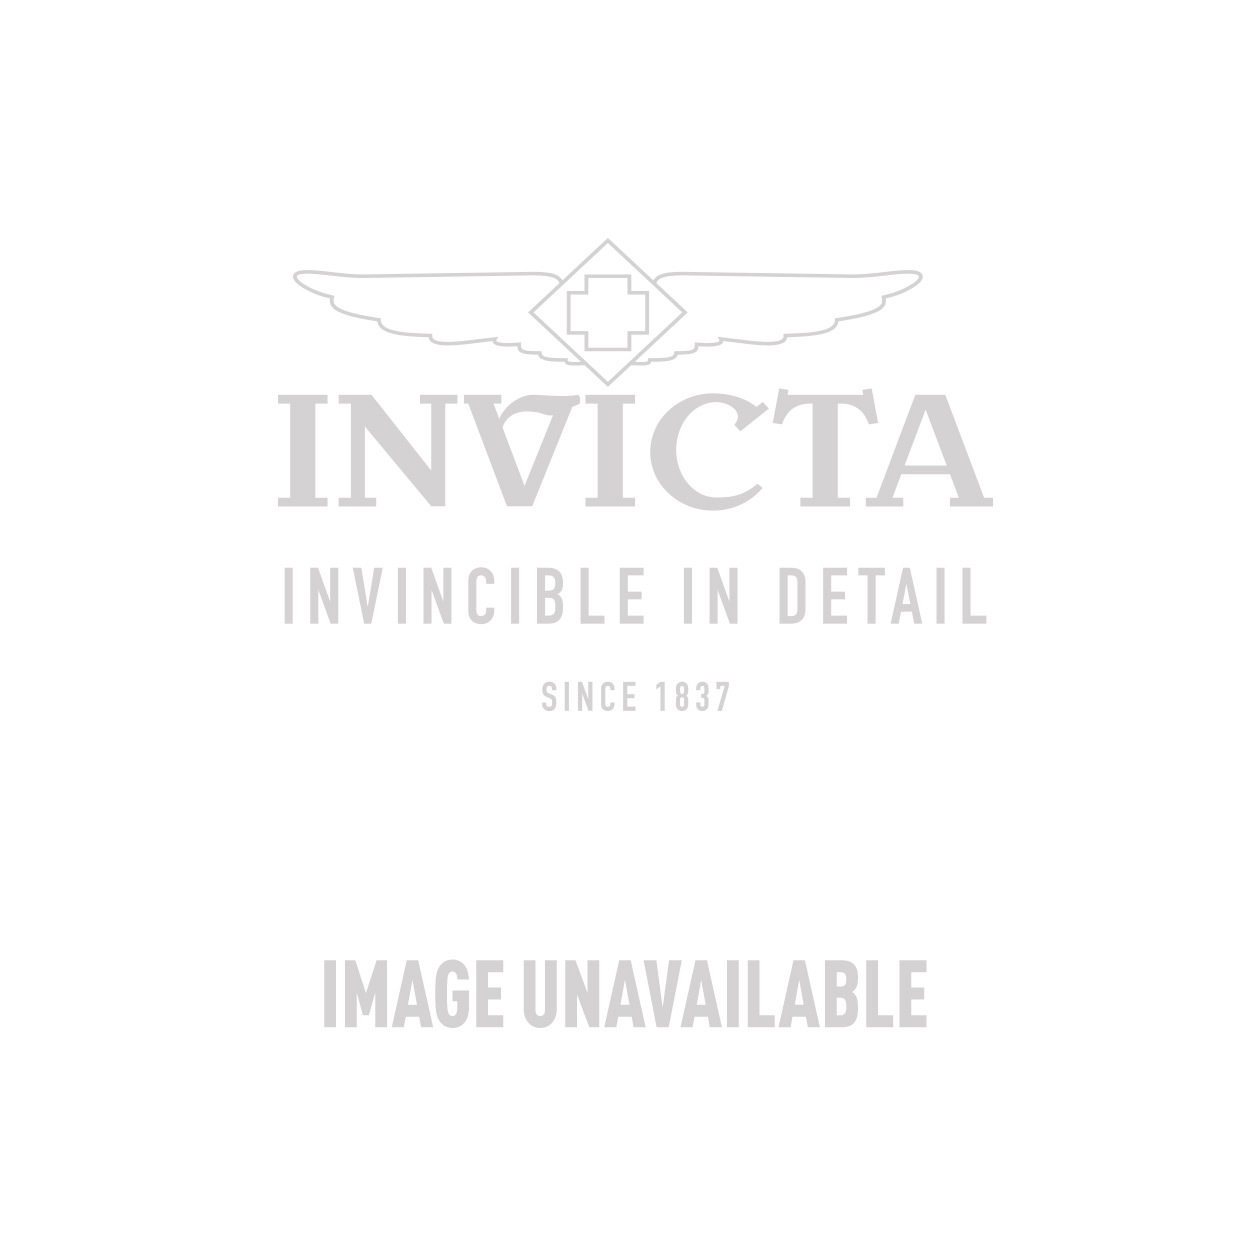 Invicta S. Coifman Swiss Movement Quartz Watch - Rose Gold case with Rose Gold tone Stainless Steel band - Model SC0341